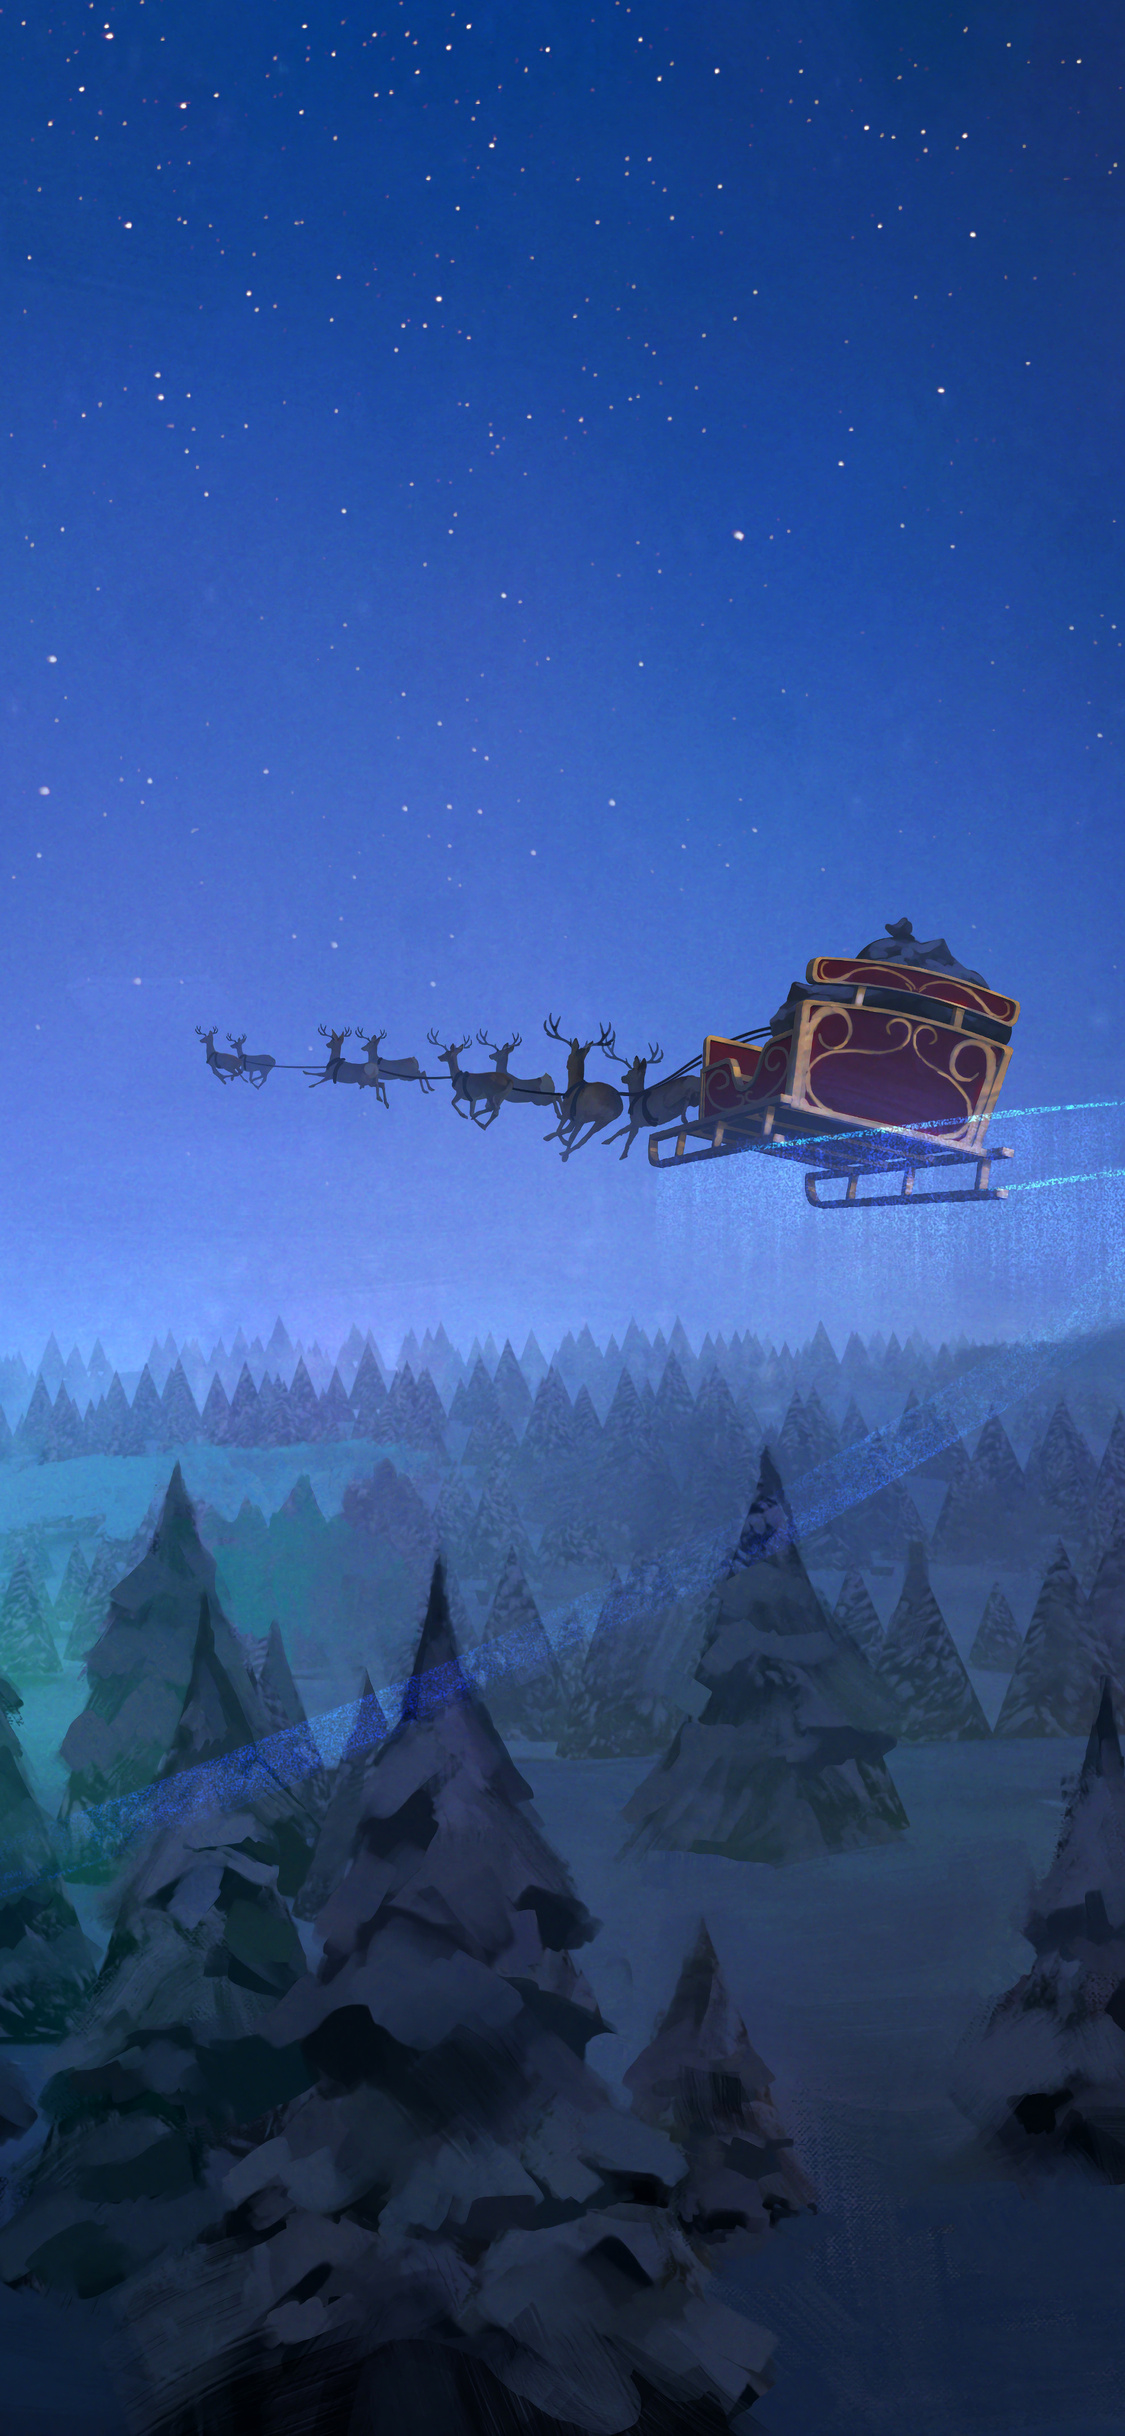 1125x2436 Santa Claus Reindeer Sleigh Flying Christmas Tree